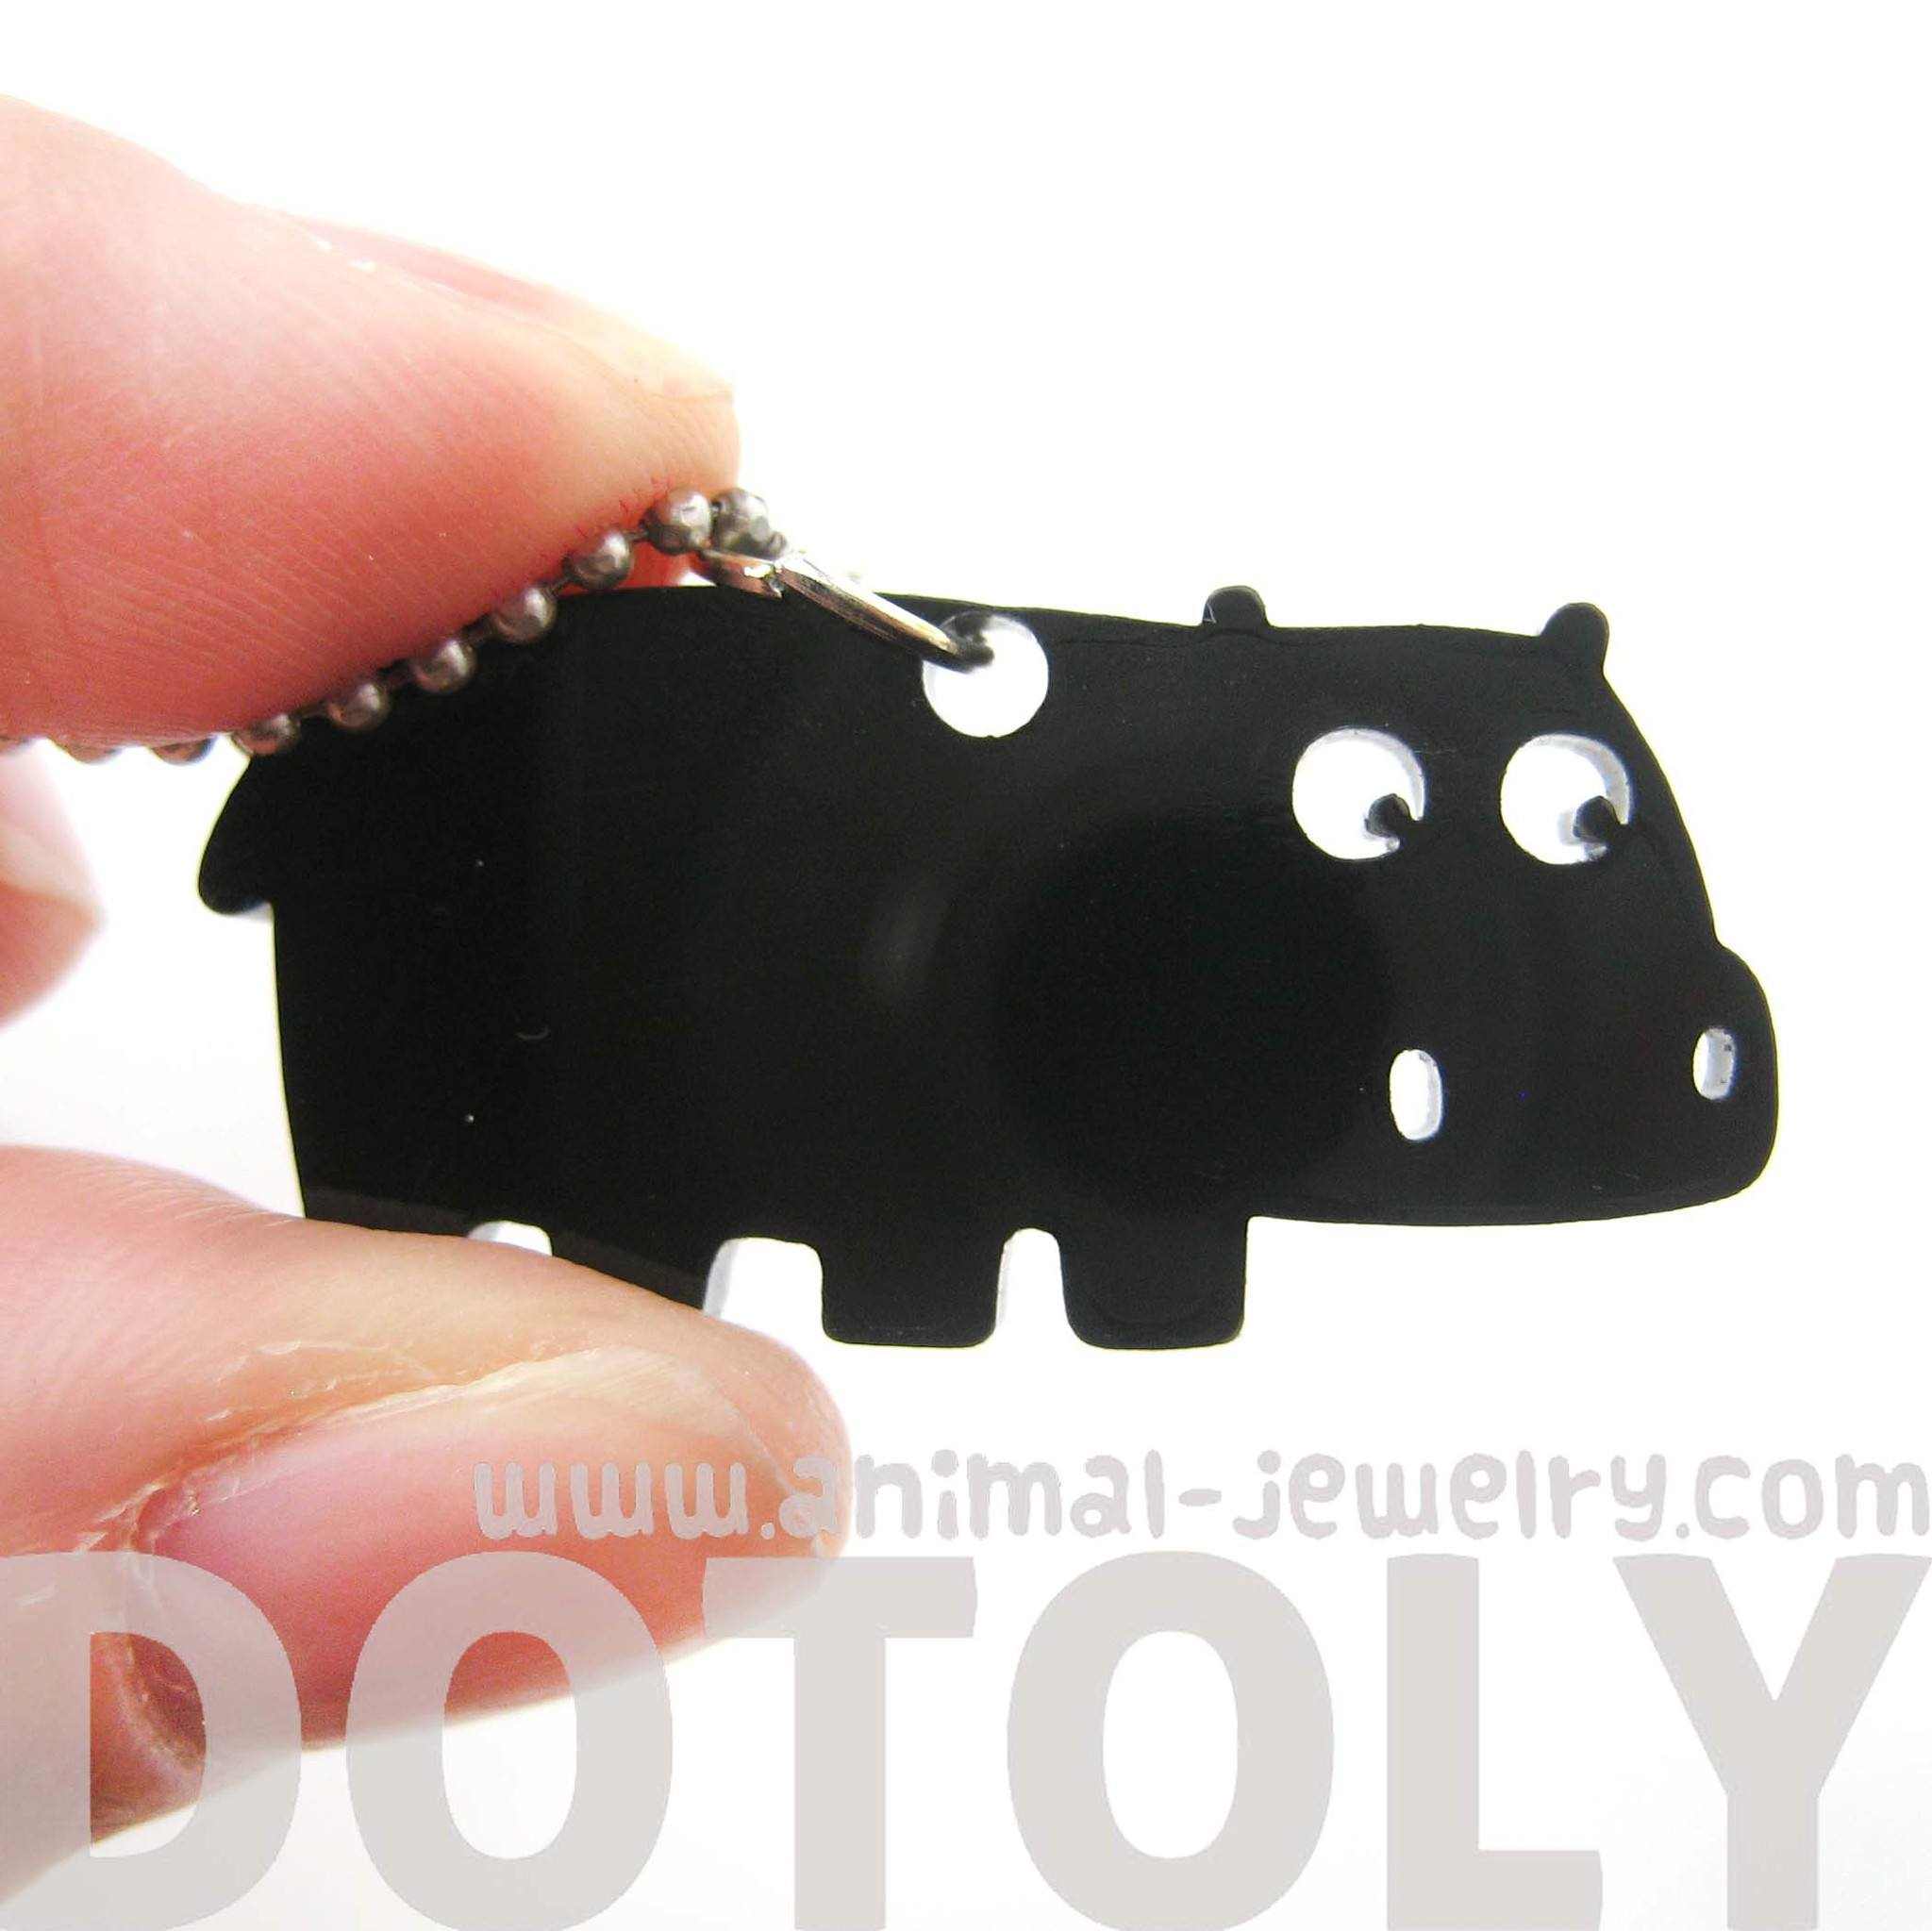 hippo-silhouette-shaped-pendant-necklace-in-black-acrylic-animal-jewelry